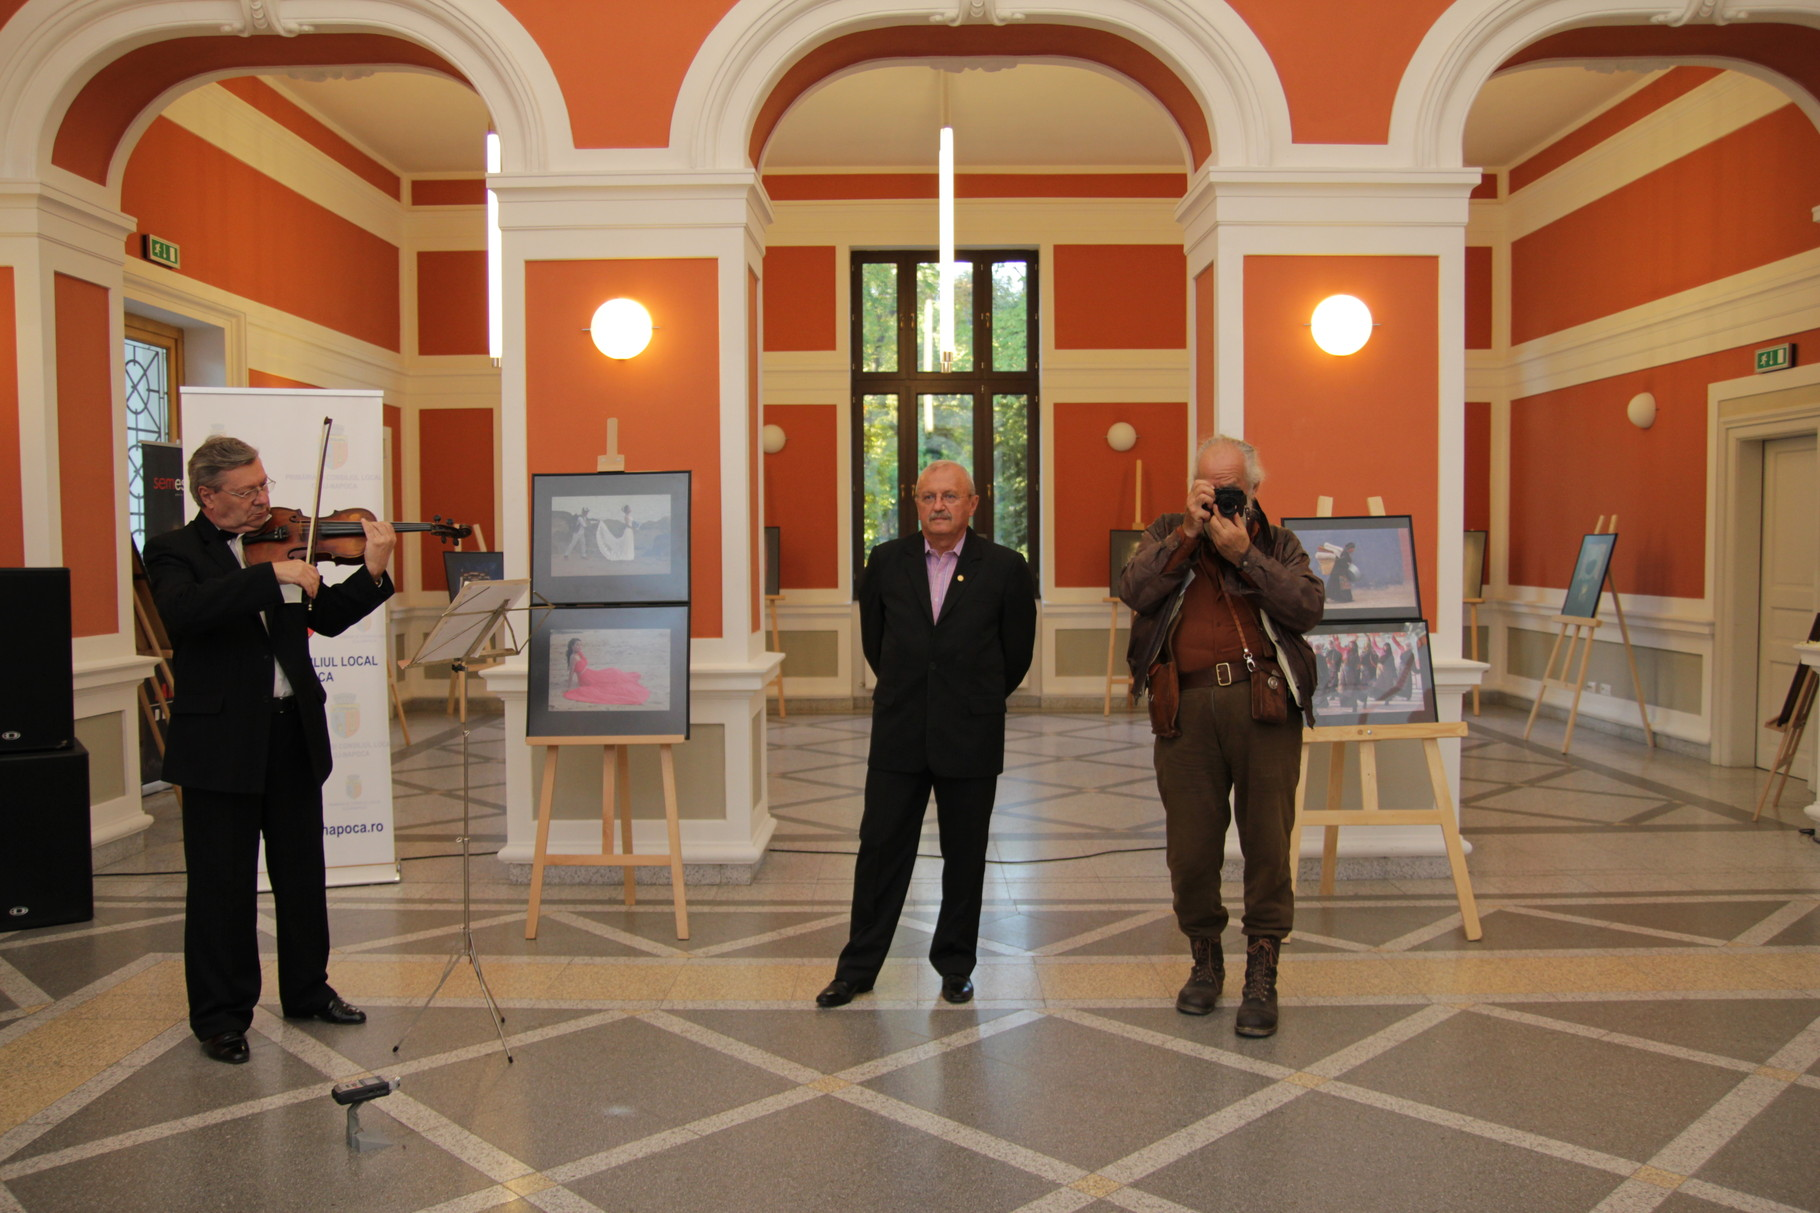 China Photography Festival in Romania - Oppening personal exhibition Stefan Toth AFIAP in Cluj Napoca (RO)